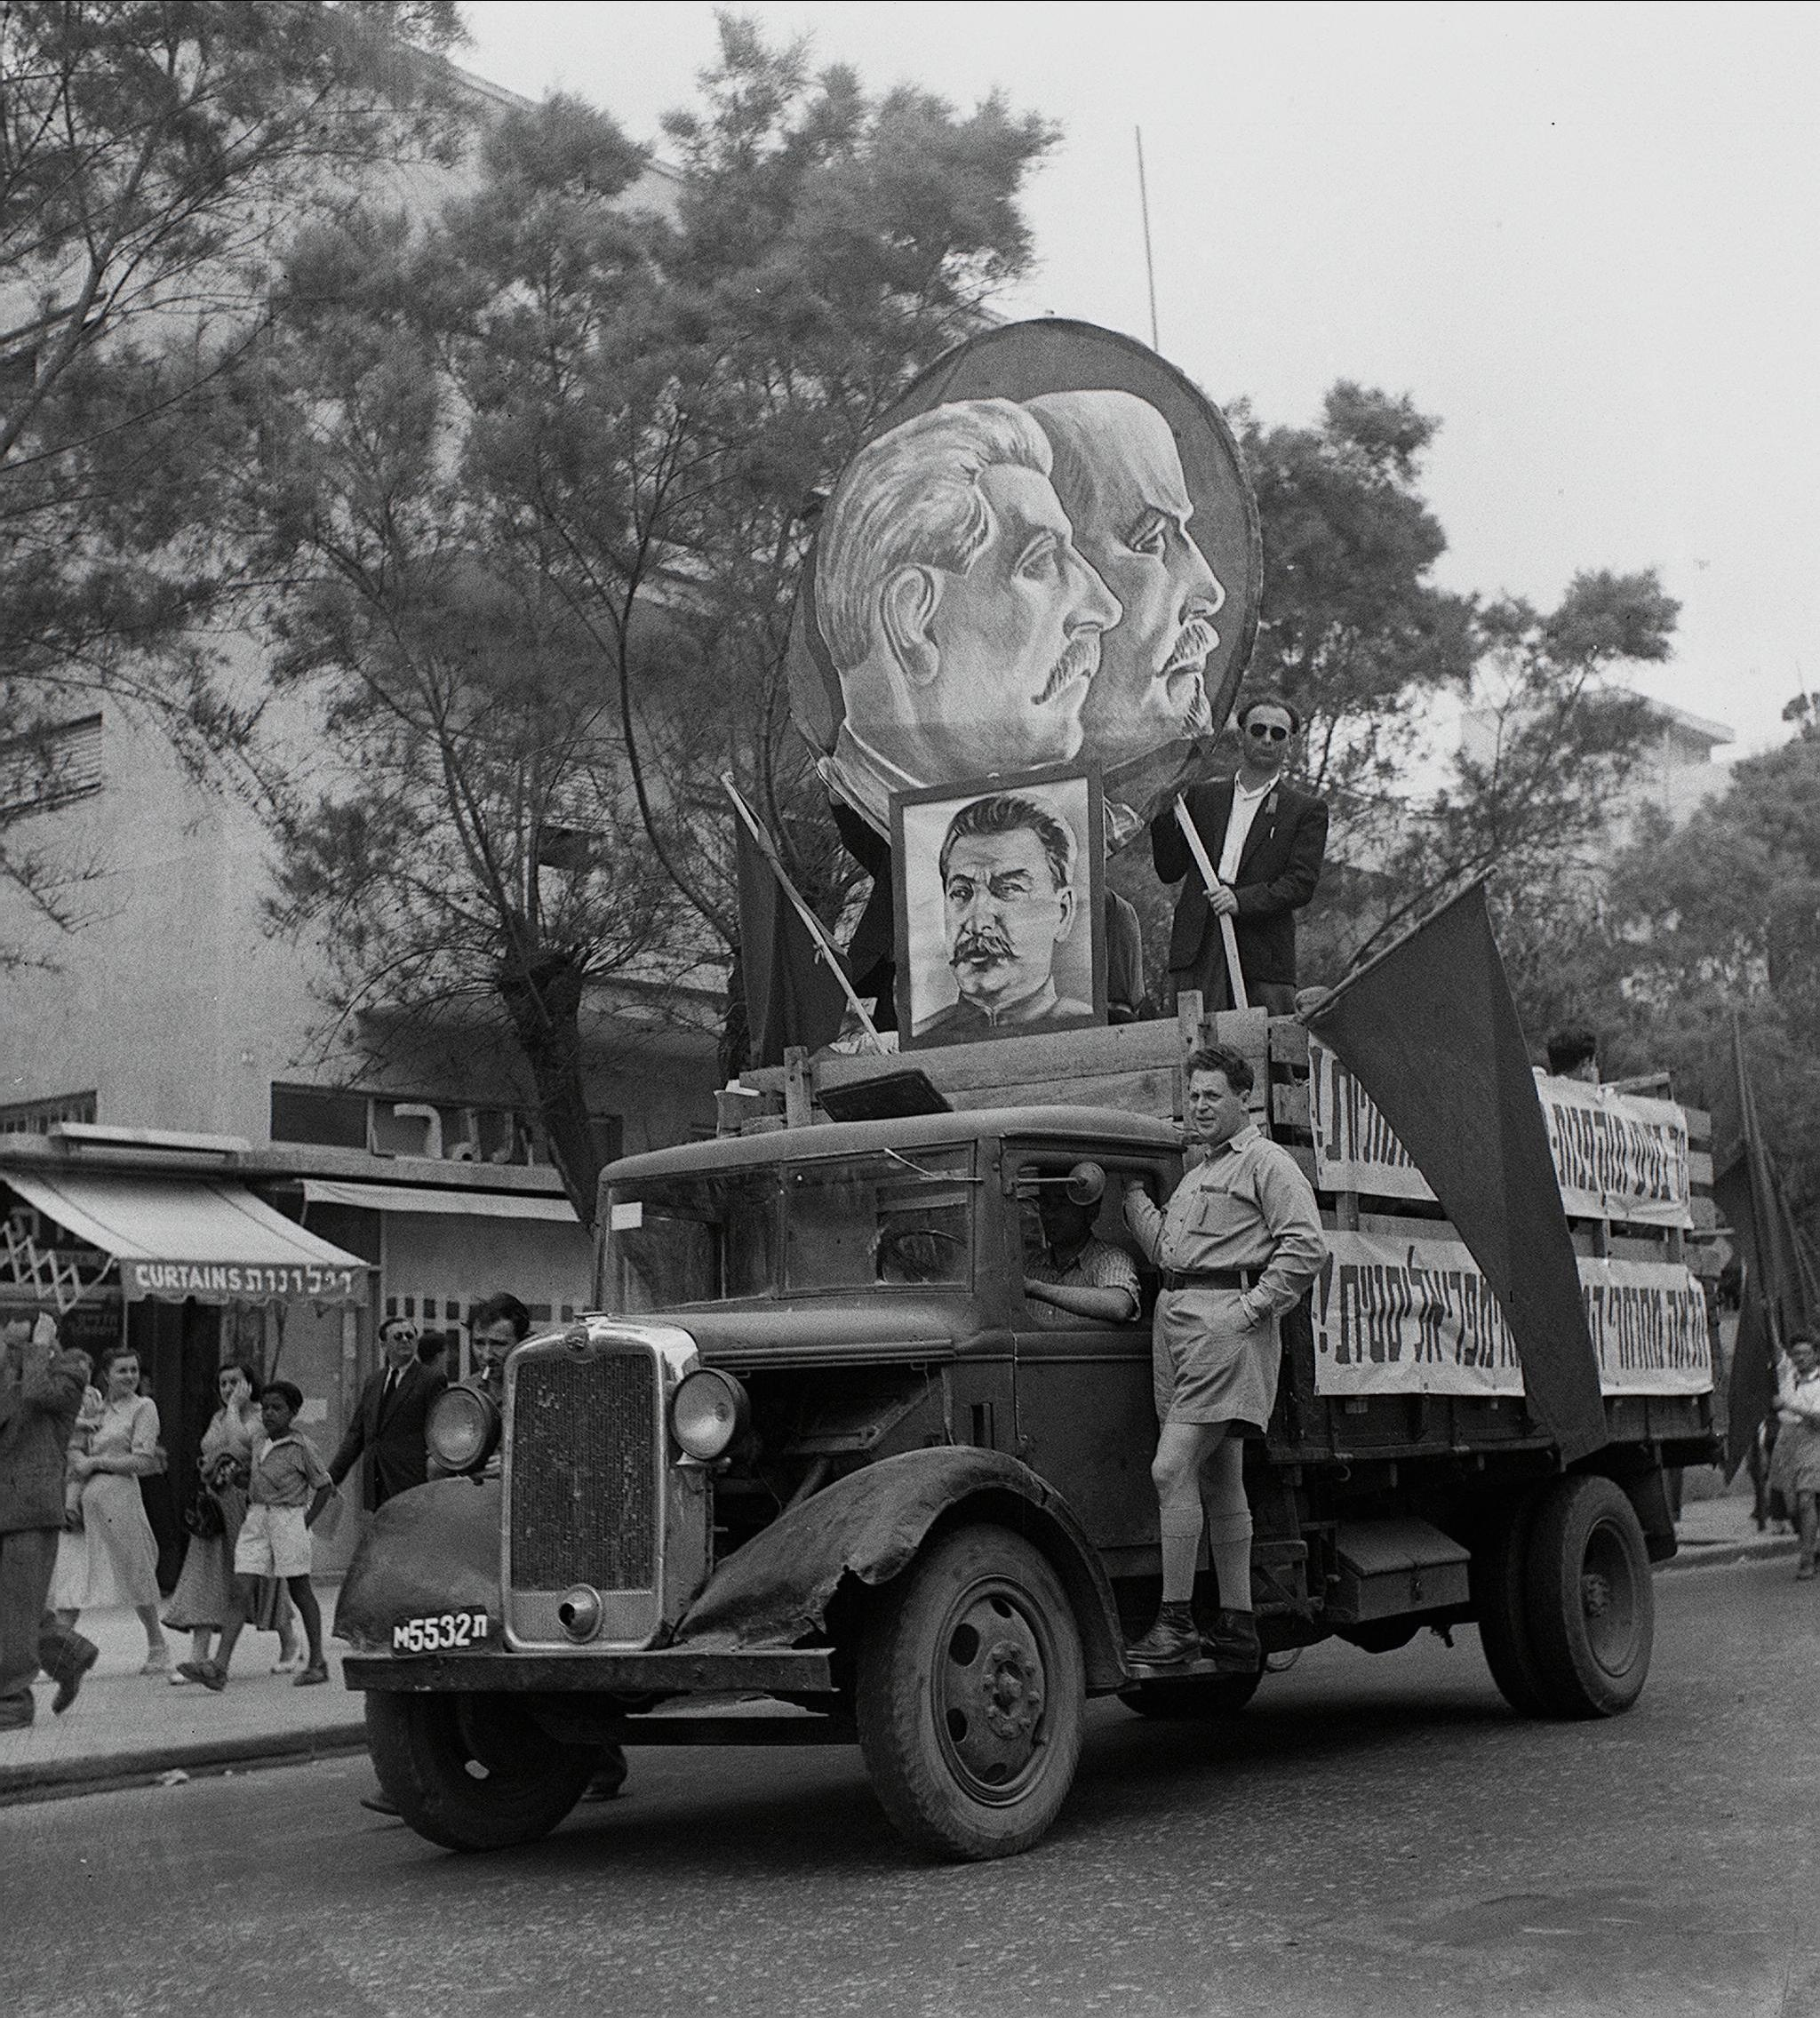 File:May Day Tel-Aviv 1949.jpg